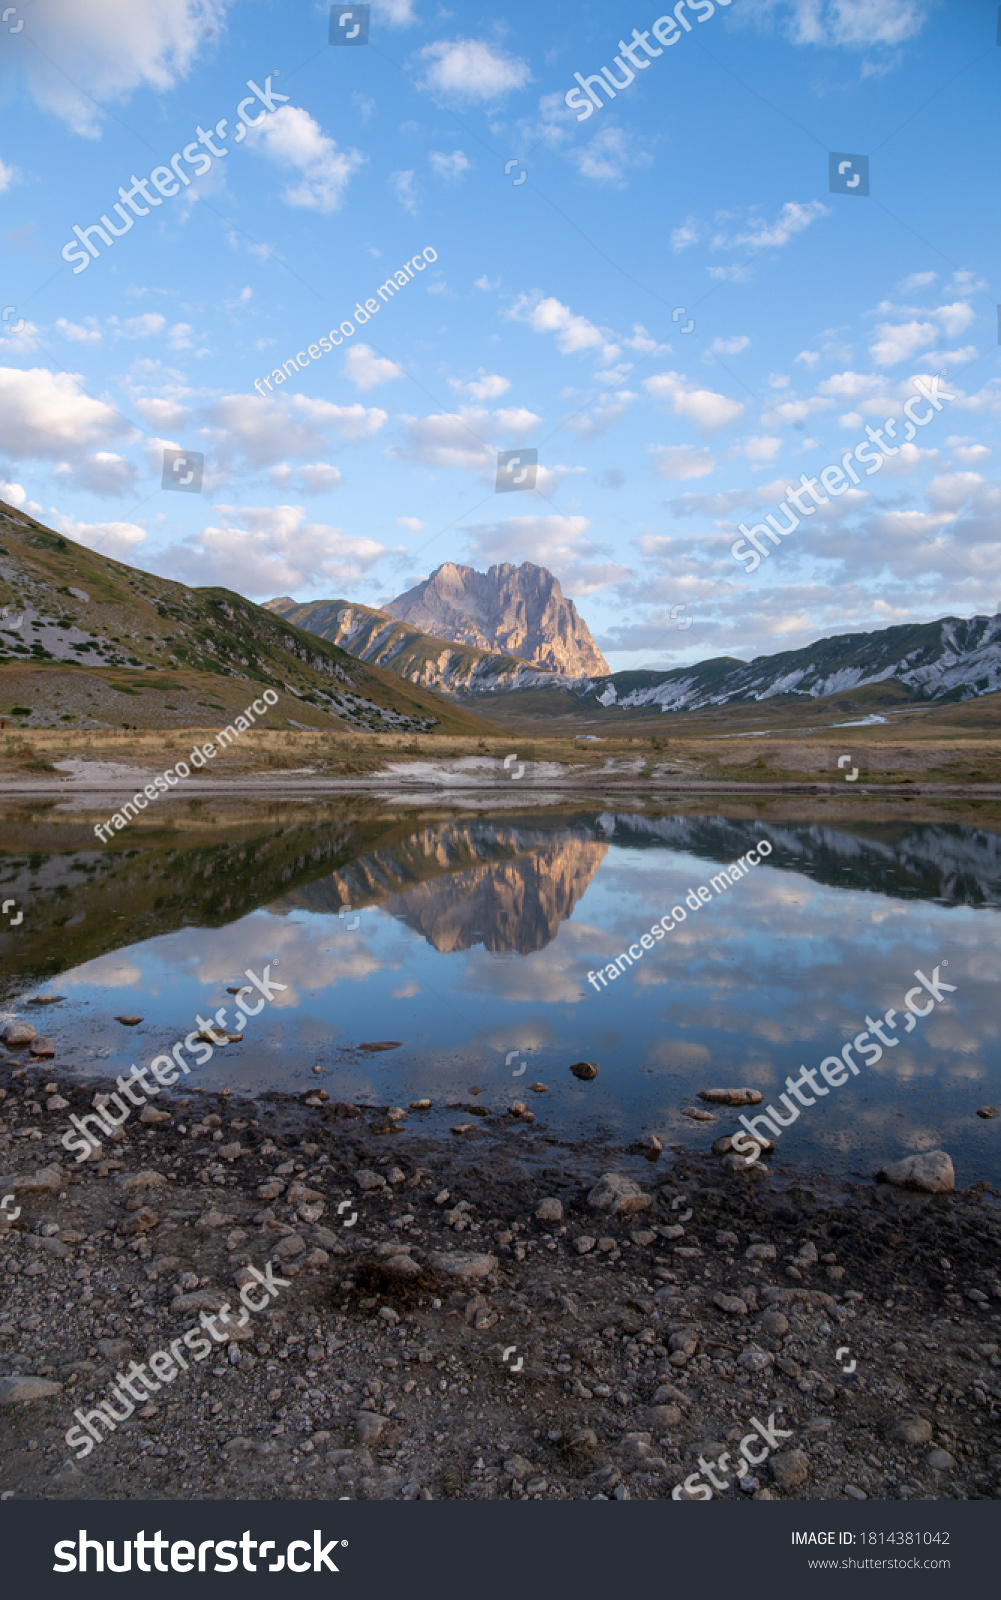 land Imperator and the Gran Sasso massif Gran Sasso National Park Abruzzo Italyz #1814381042